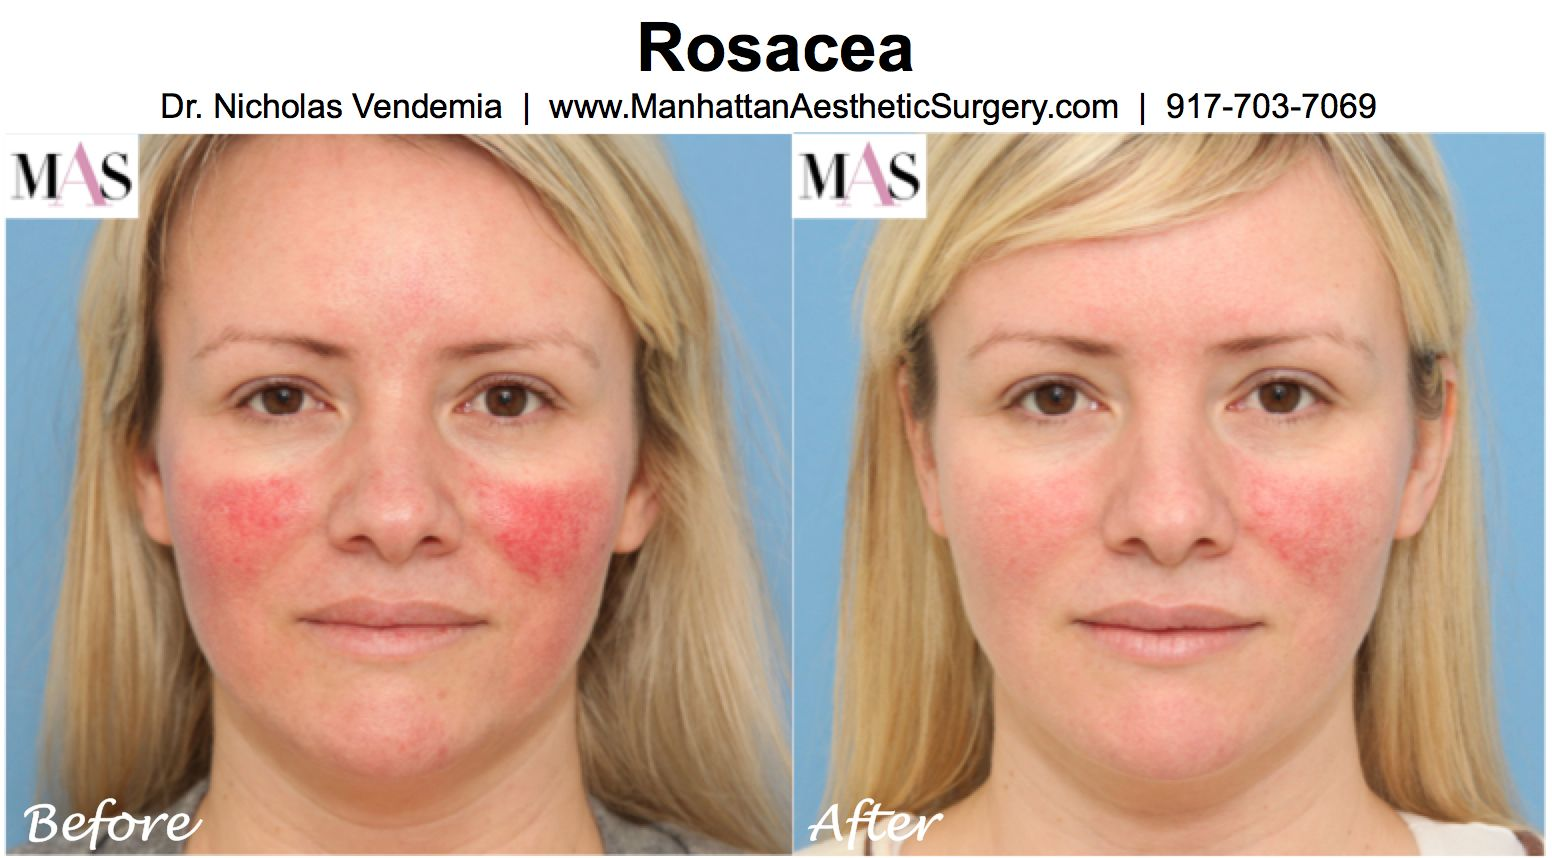 Before And After Ipl Treatments For Rosacea Rosacea Treatment